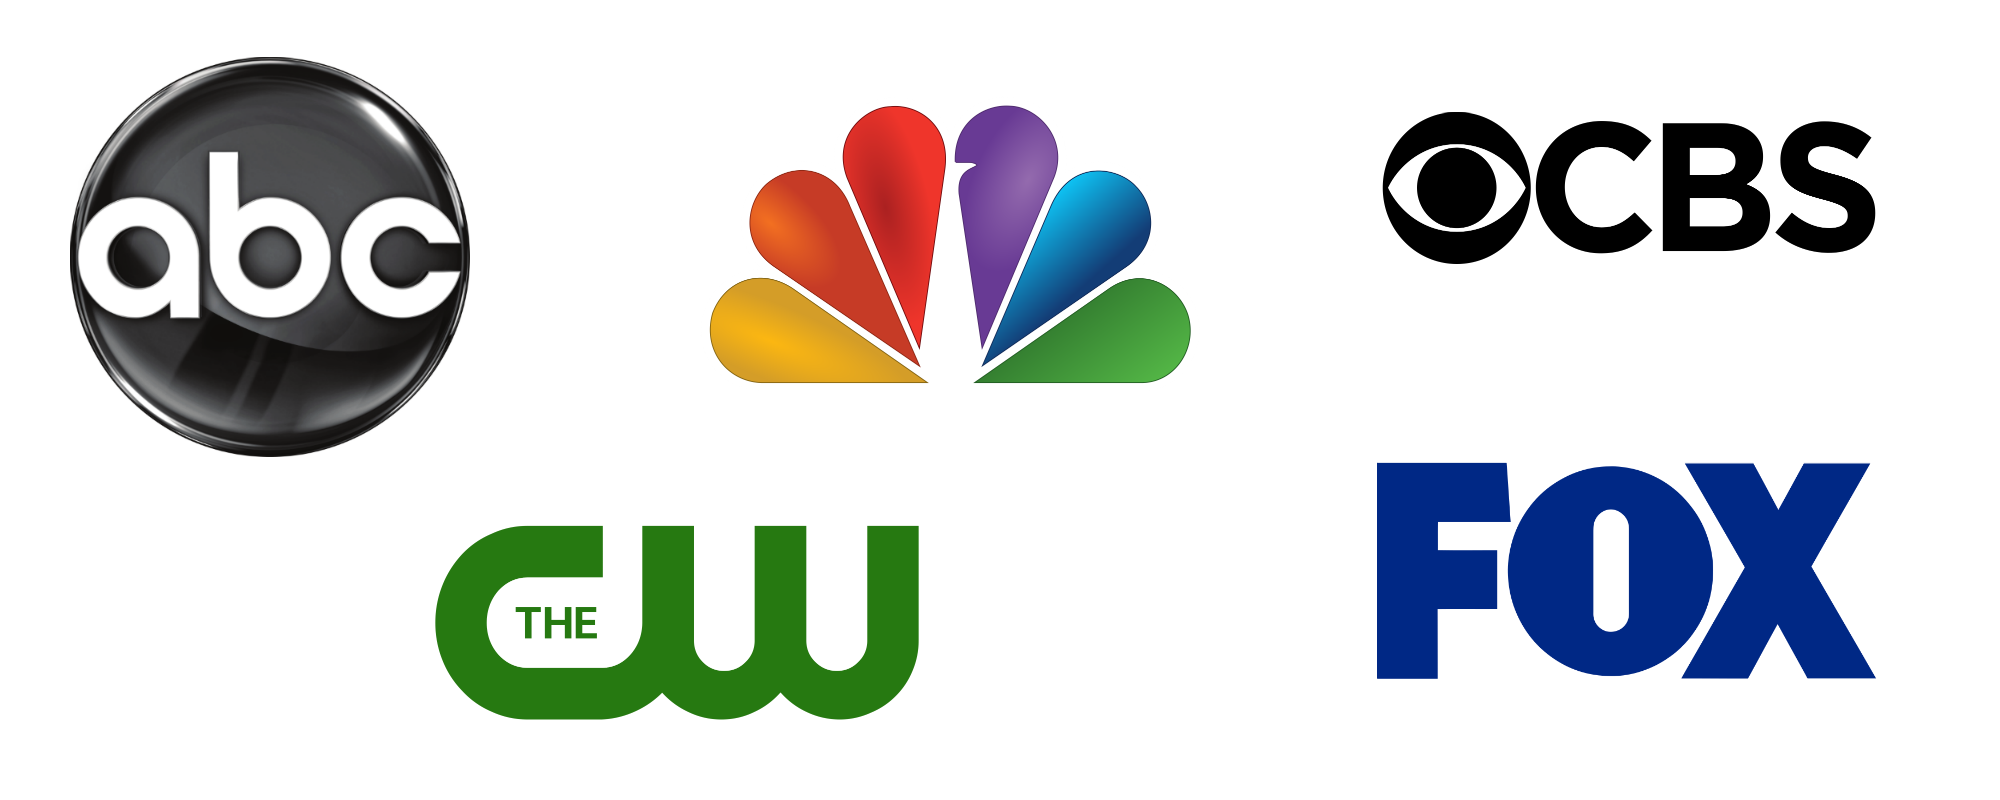 networks Which TV Network is Having the Best Year?